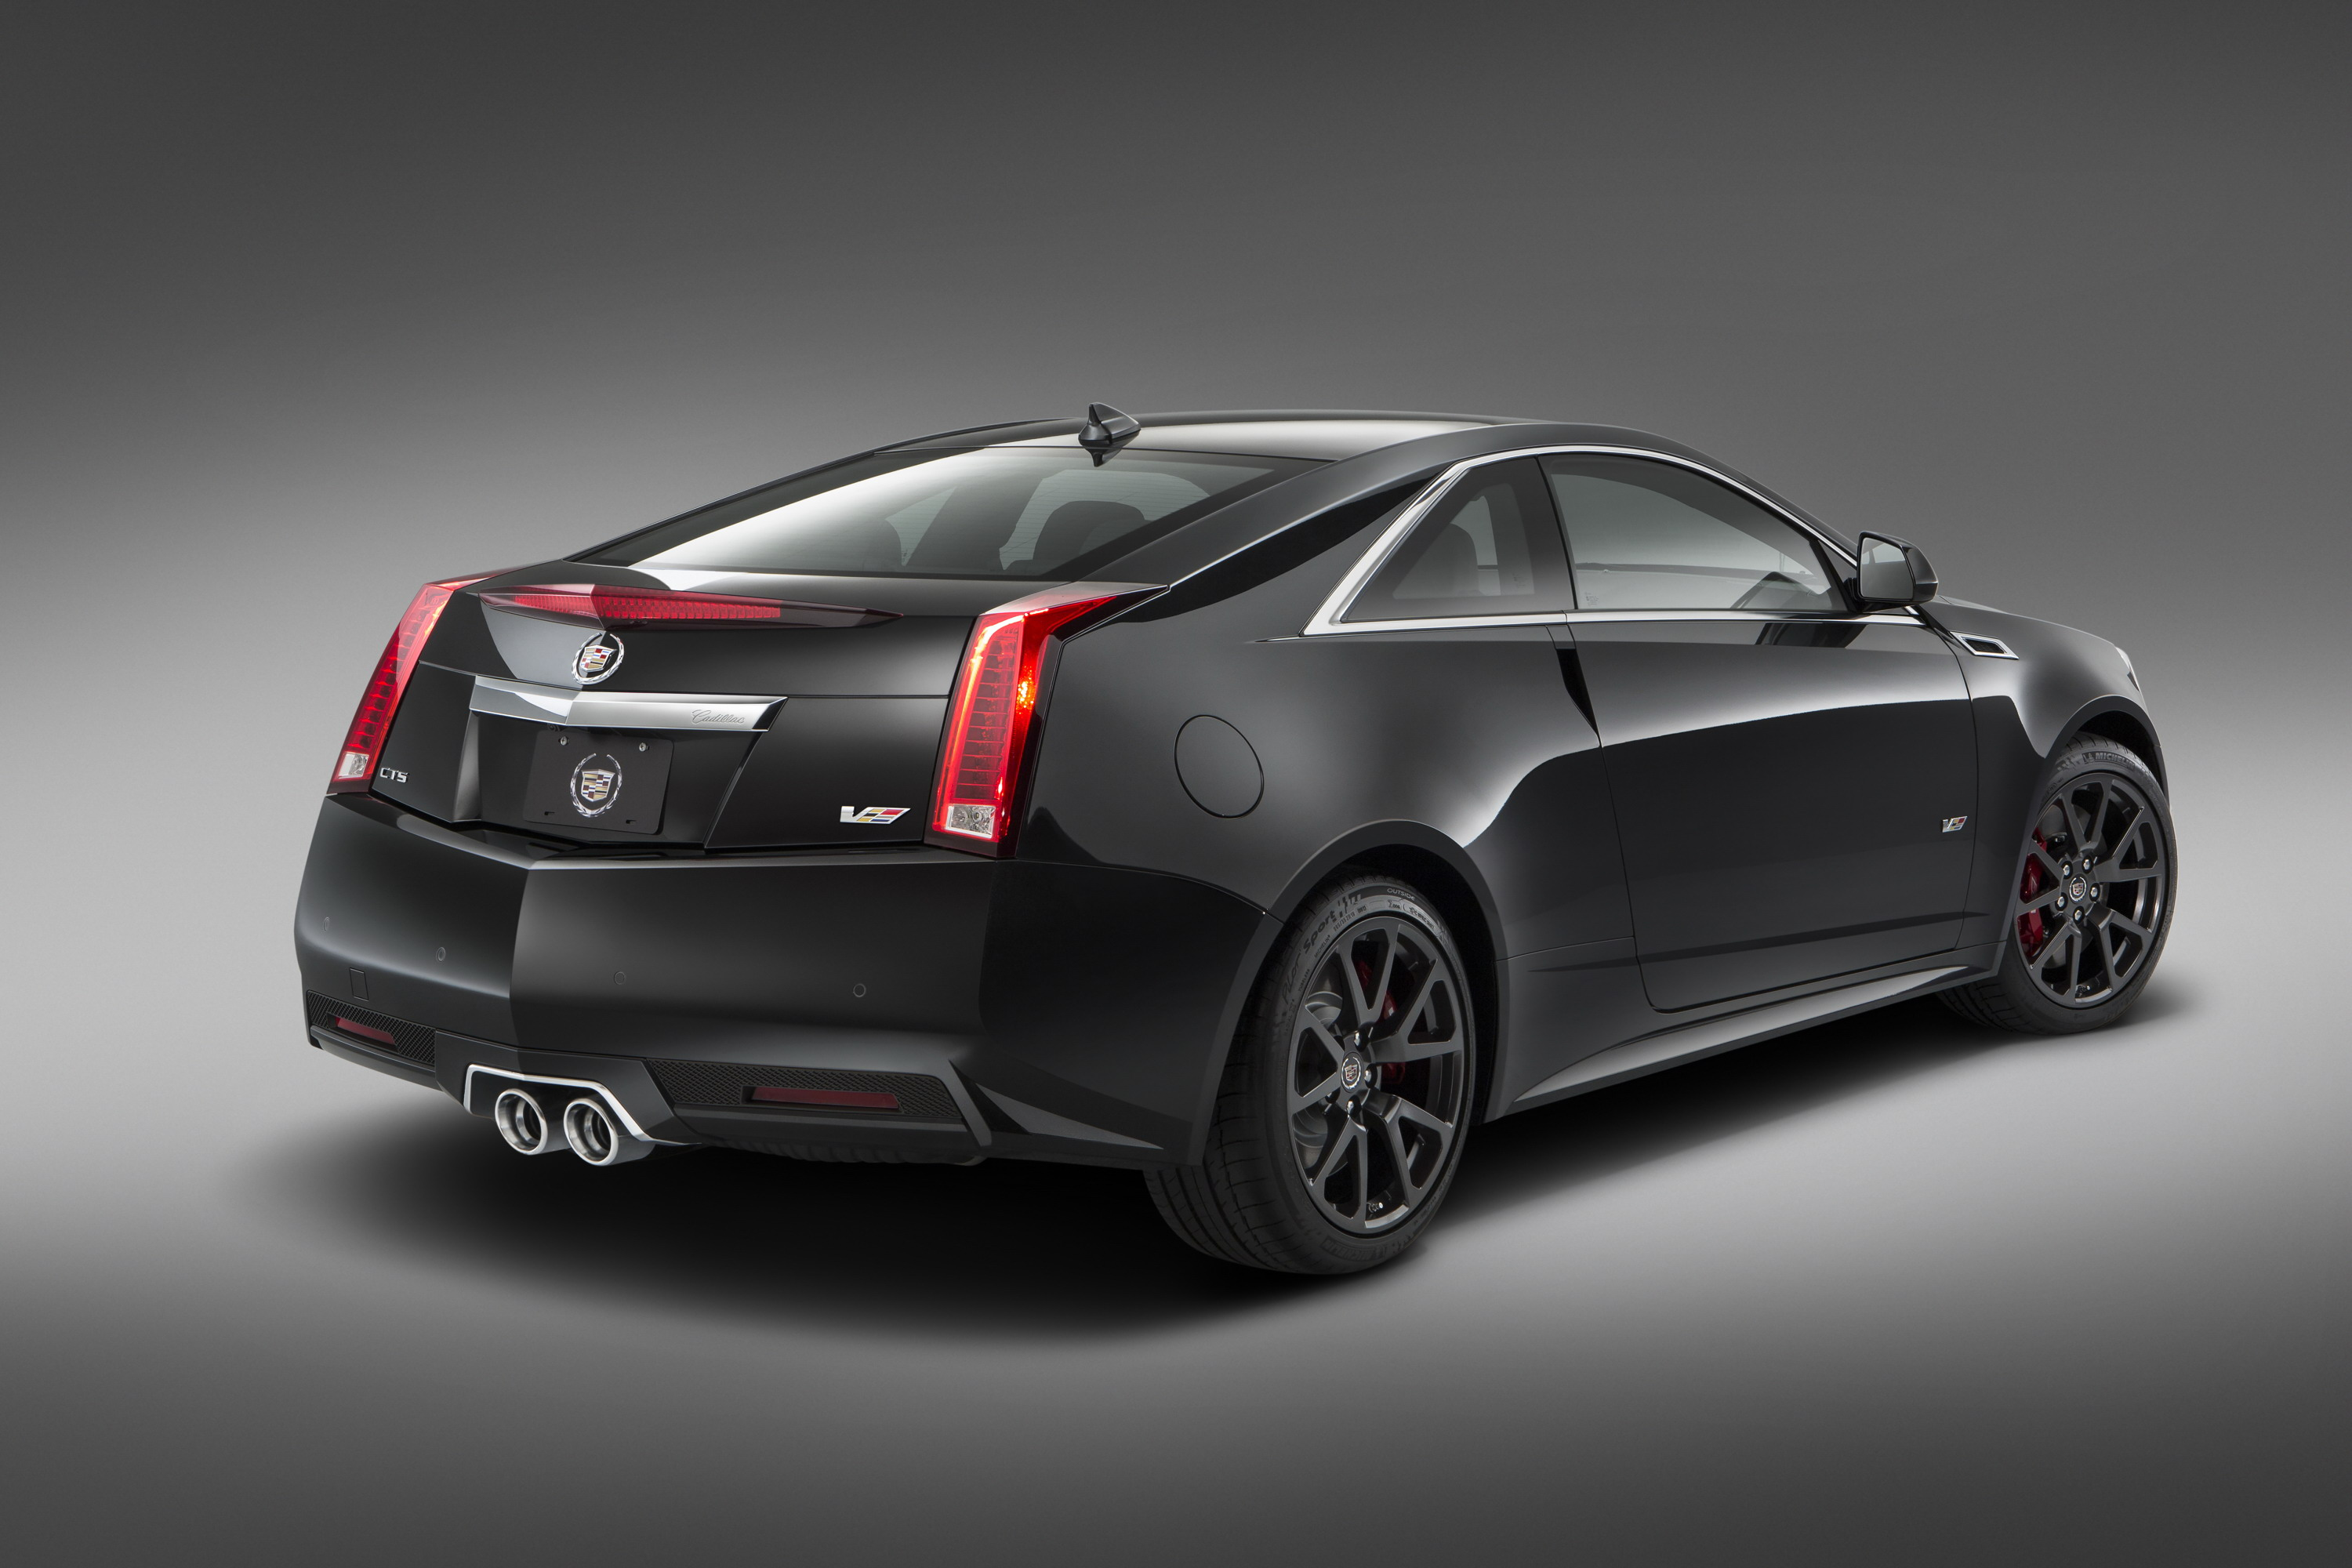 2015 cadillac cts v coupe review top speed. Black Bedroom Furniture Sets. Home Design Ideas